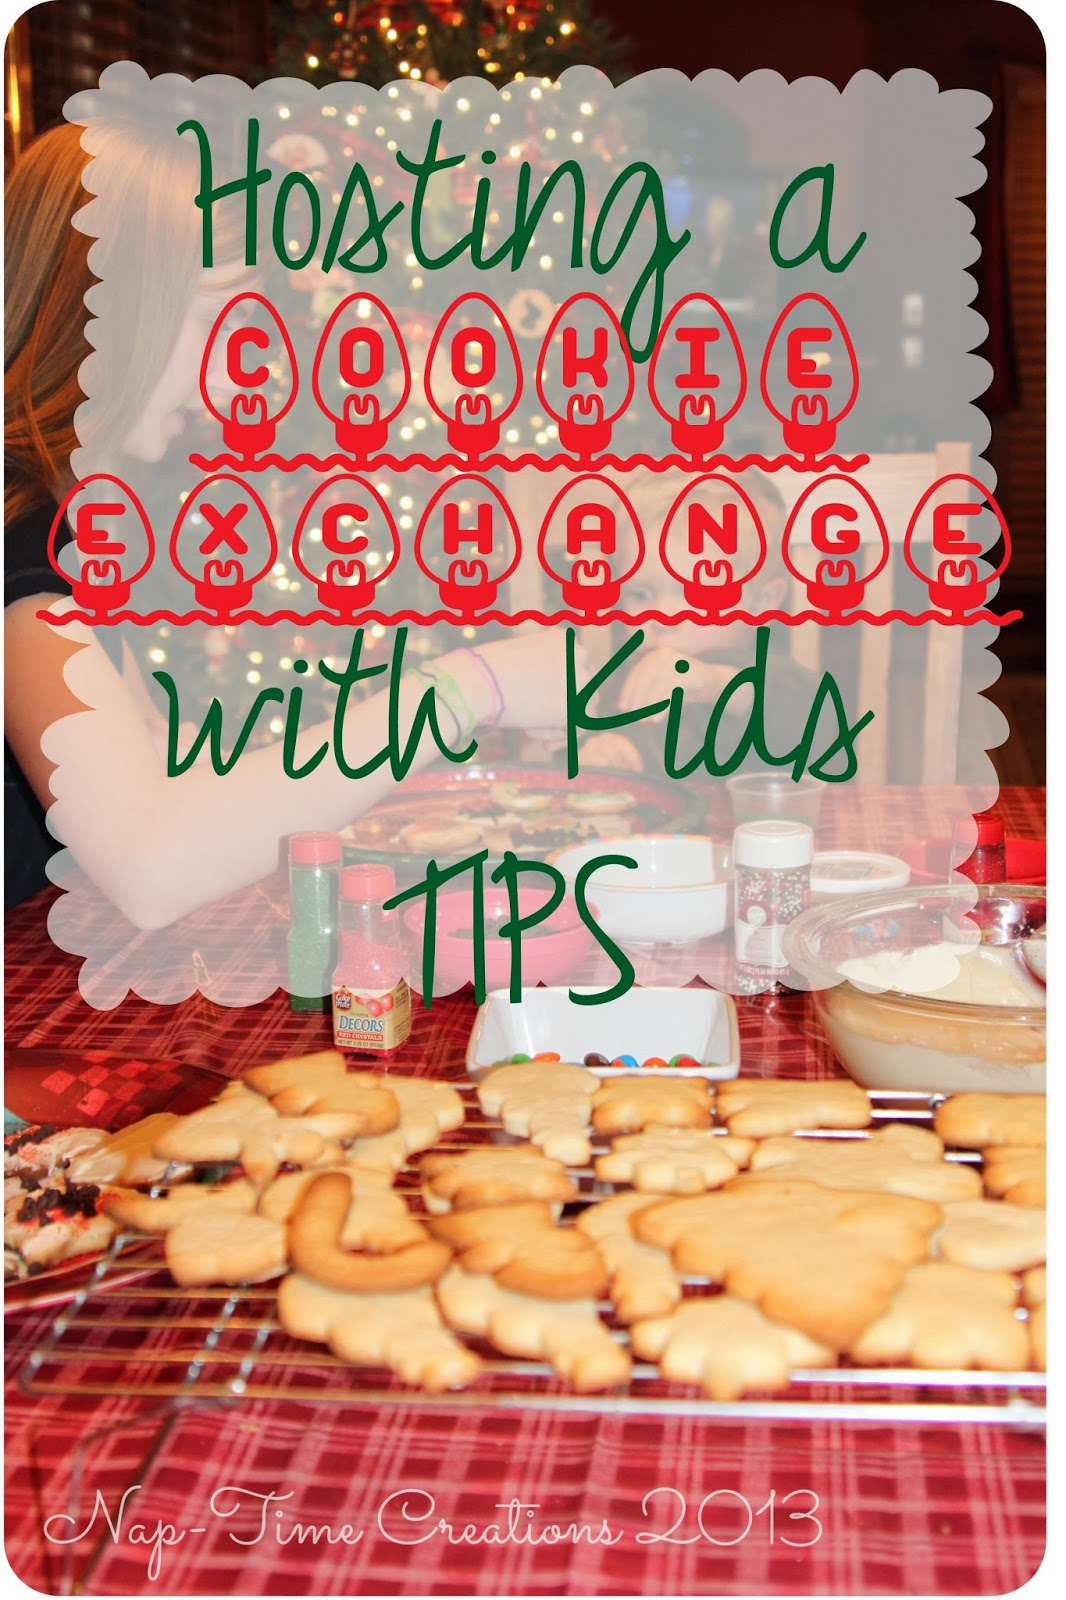 Tips for Hosting a Cookie Exchange for Kids - Kleinworth & Co